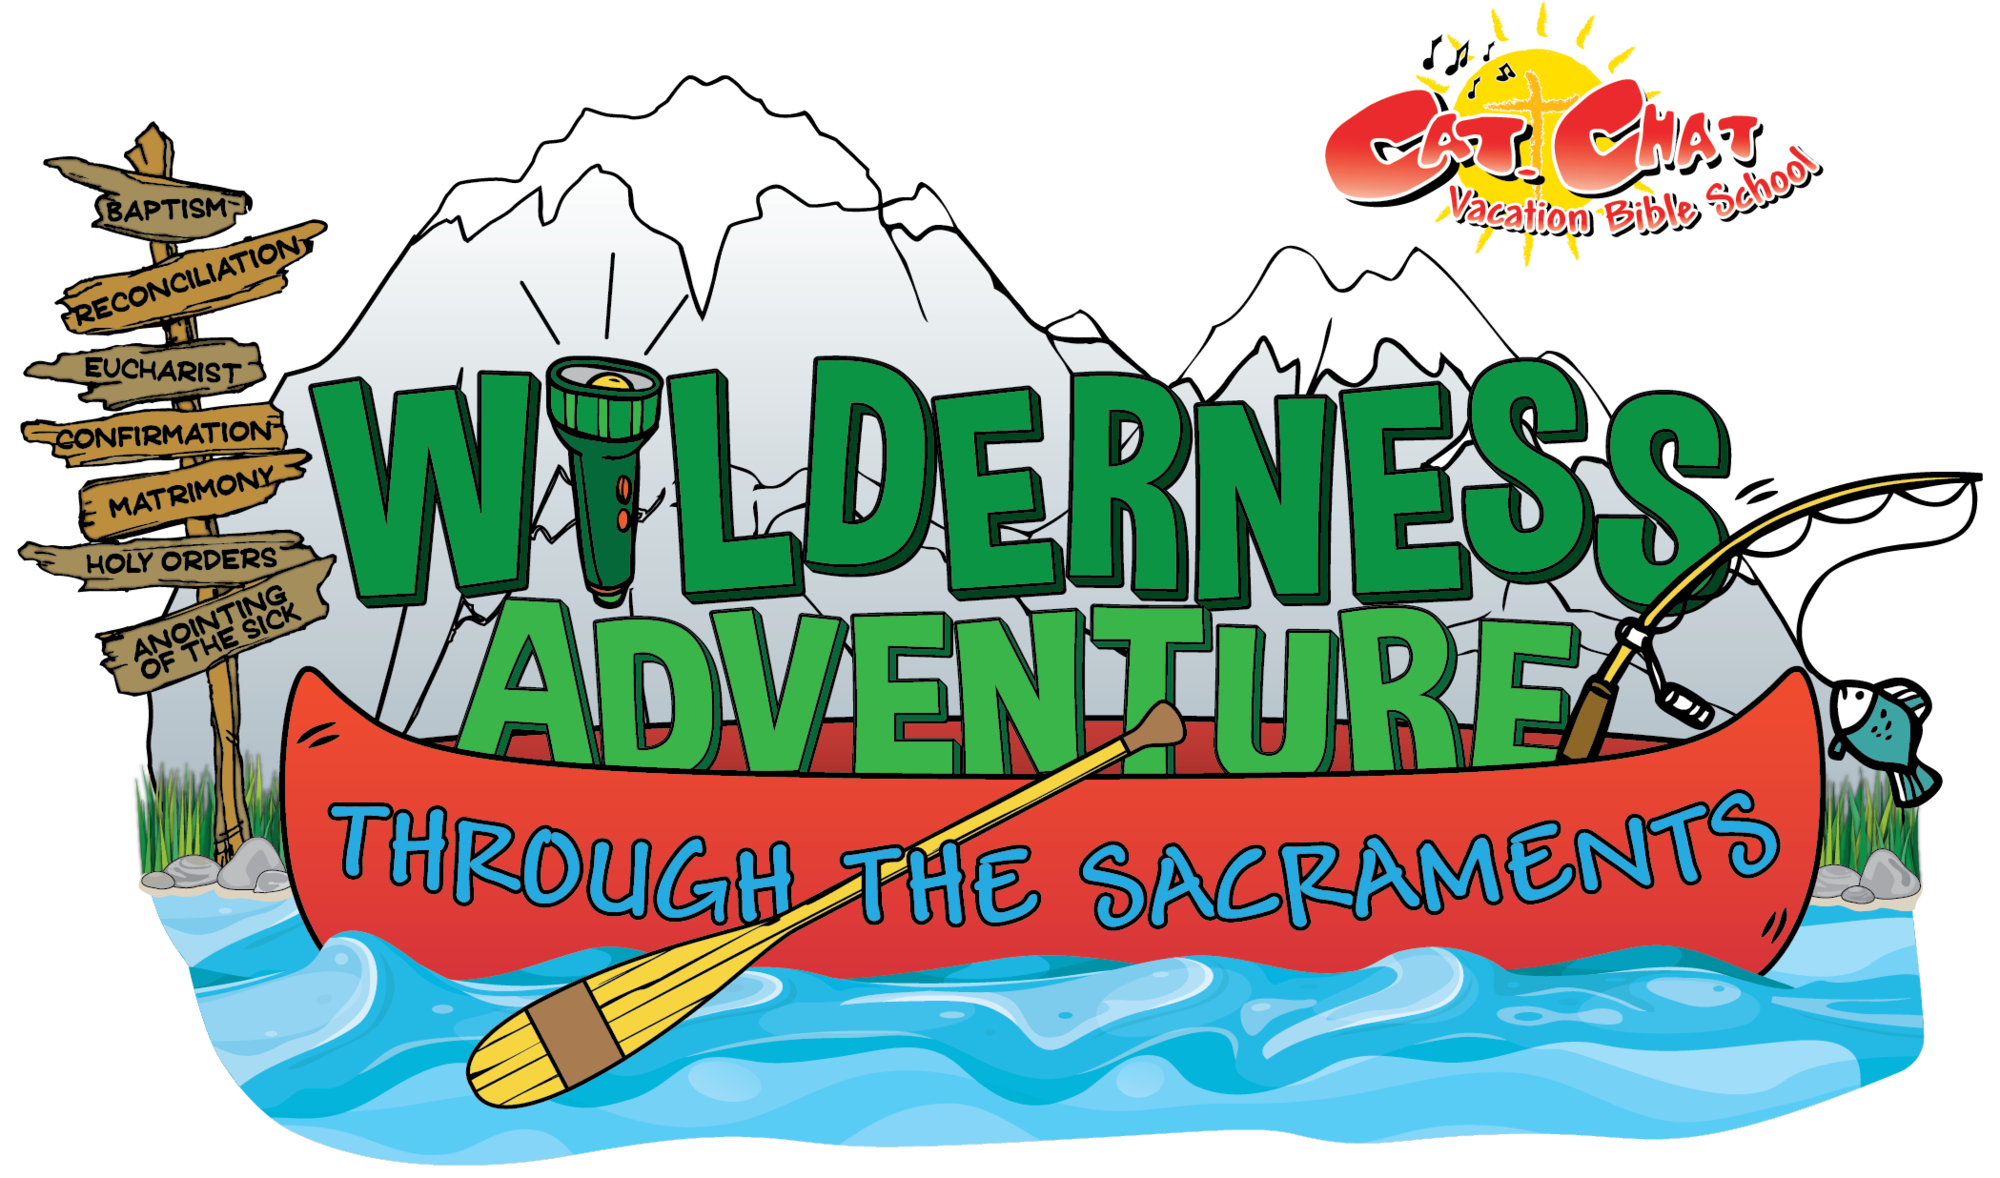 Sign Up for ST. Mary's Vacation Bible School 2020!